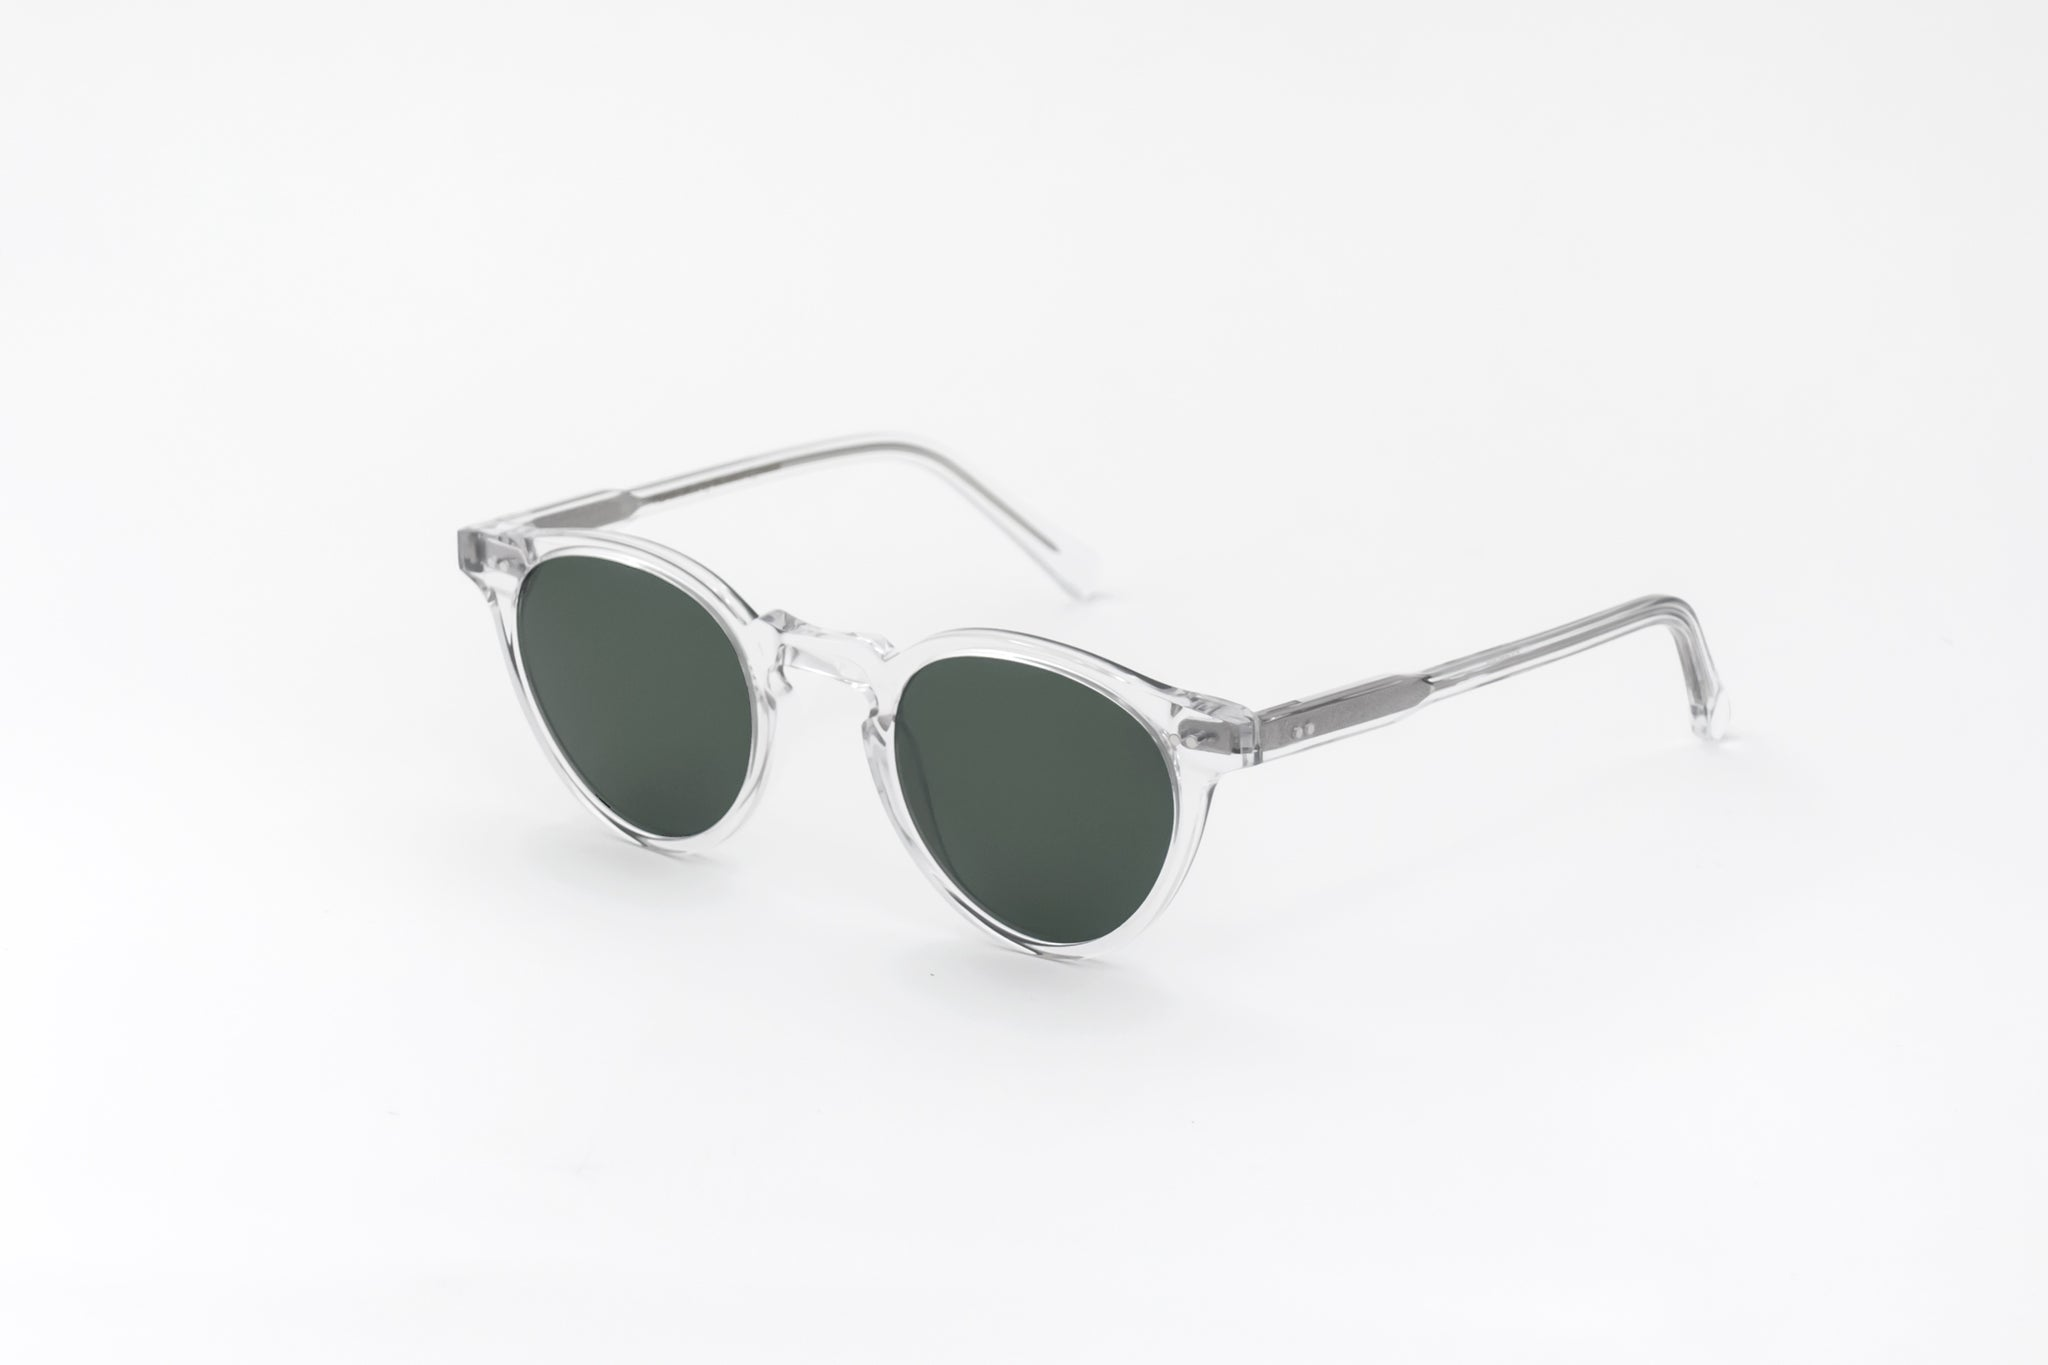 monokel eyewear sunglasses forest crystal / green solid lens